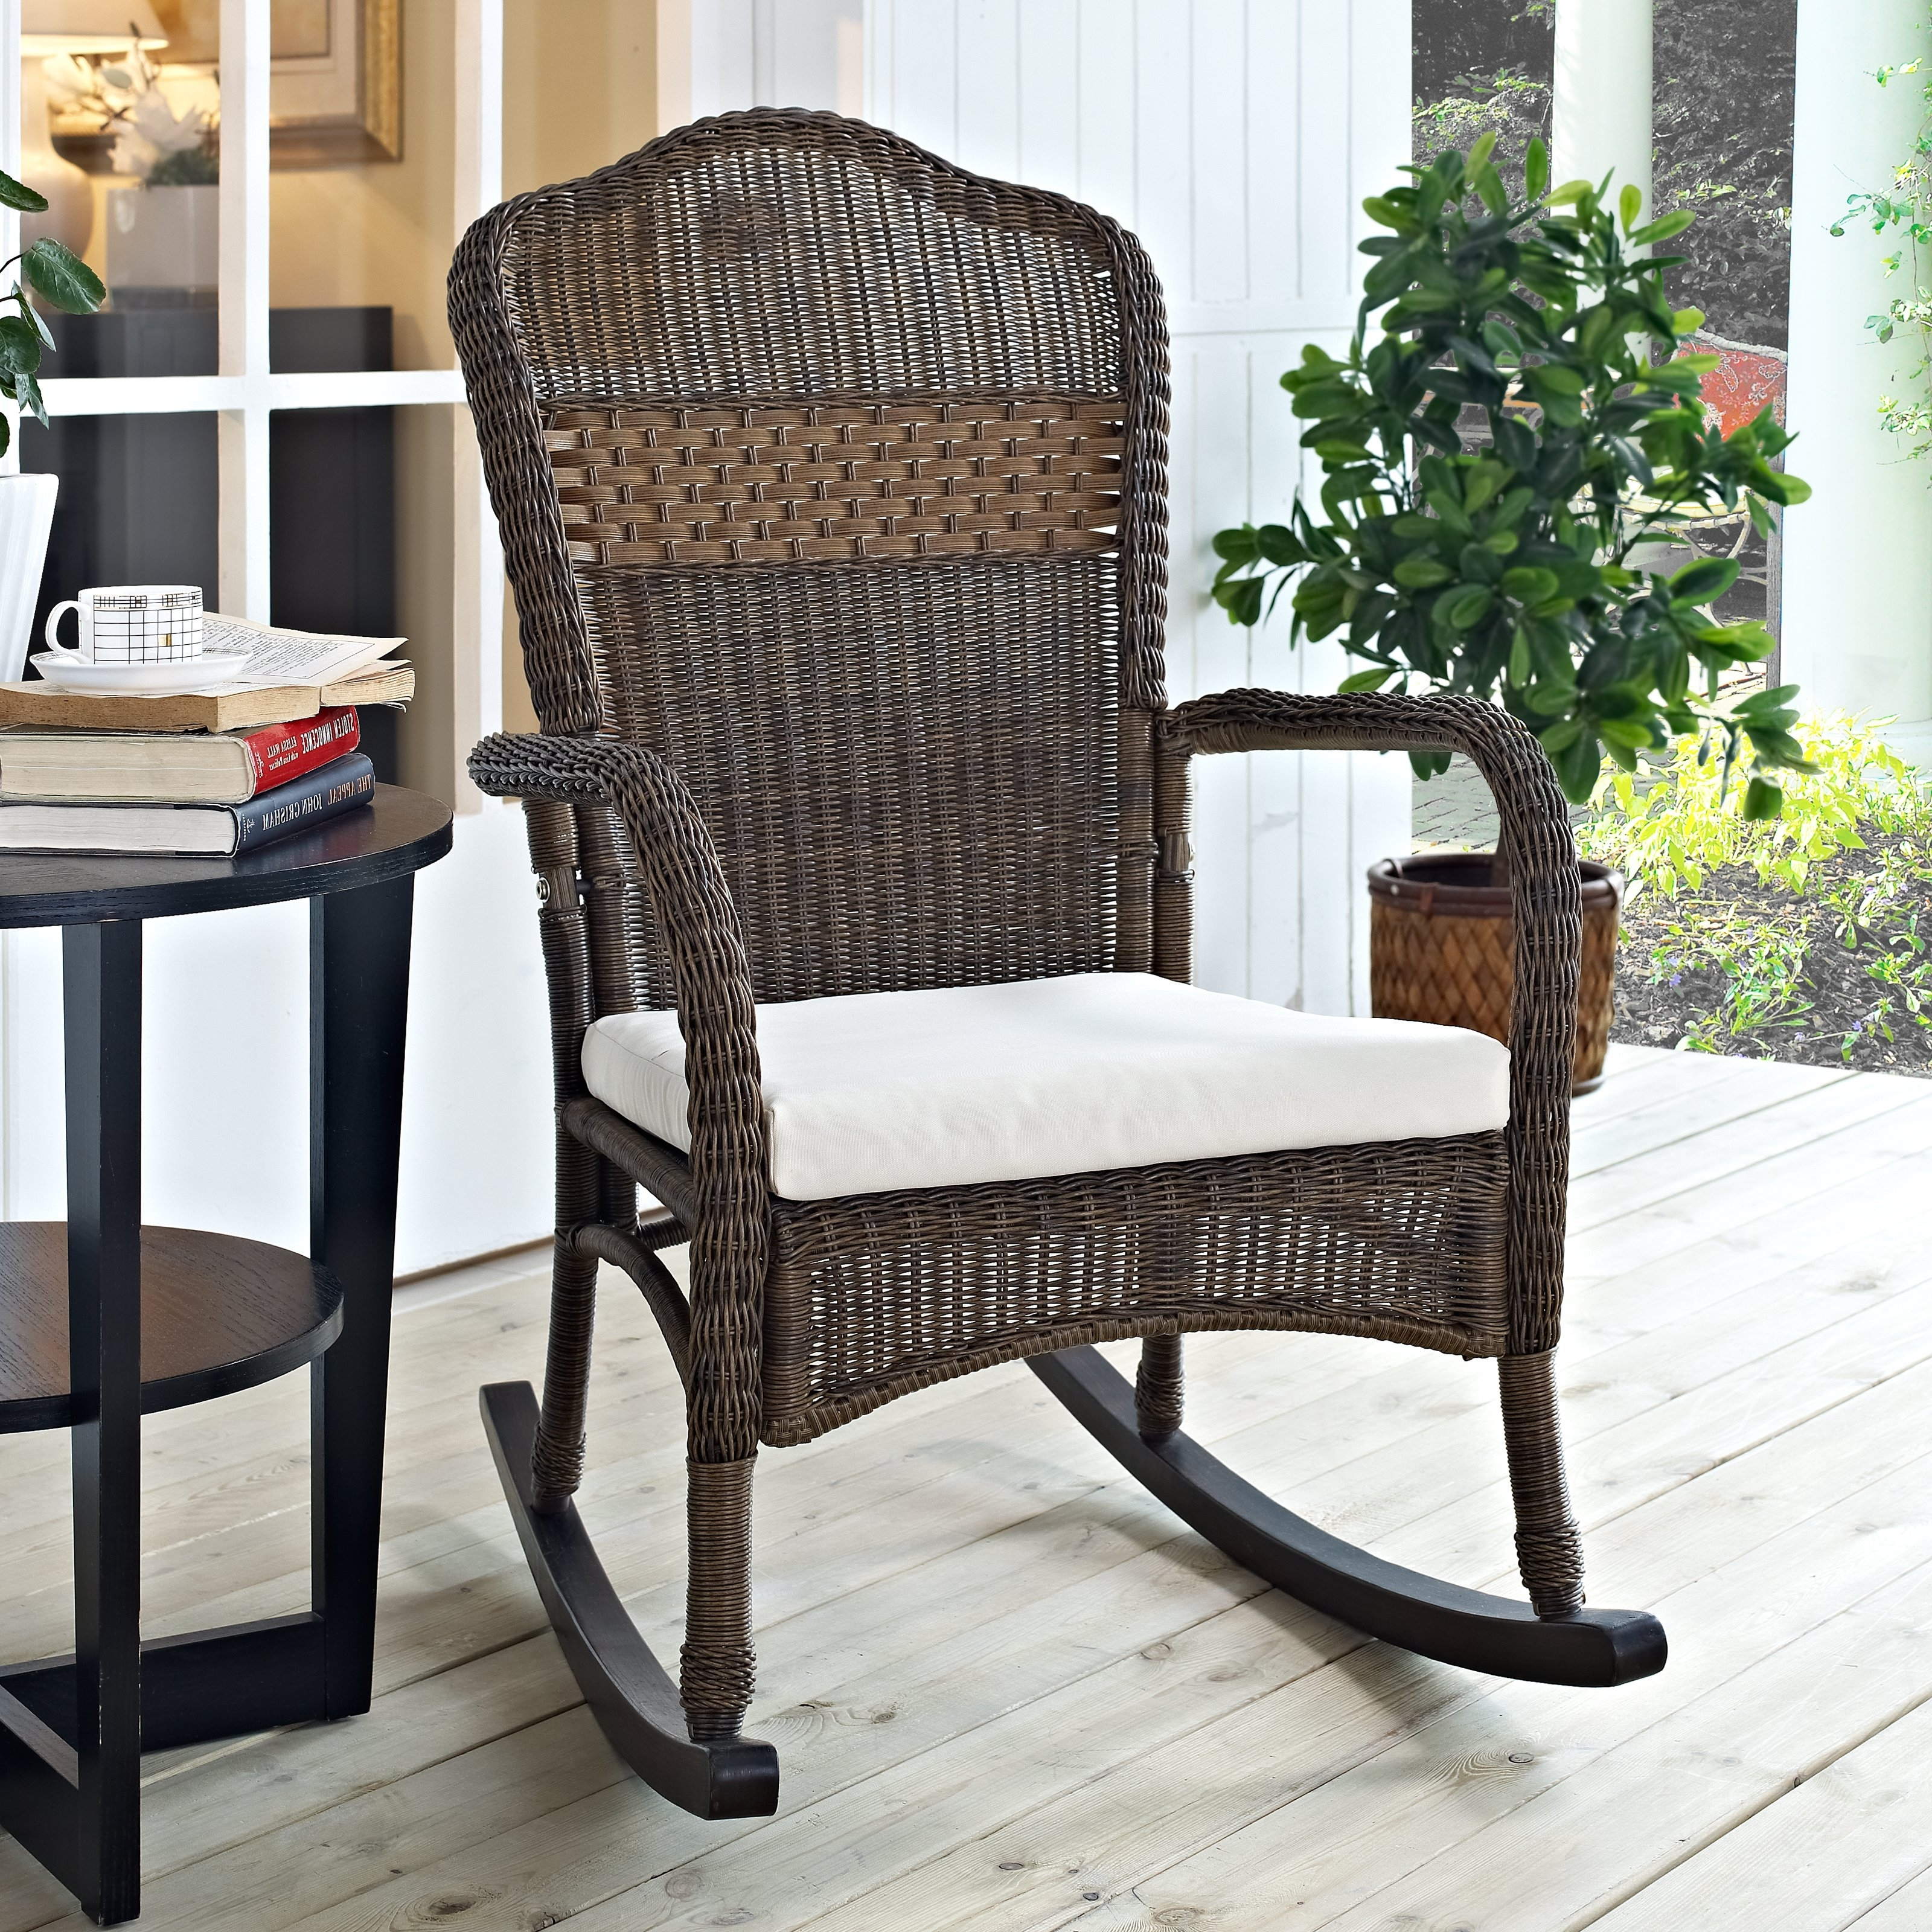 Best Outdoor Porch Rocking Chairs – Outdoor Designs Within Widely Used Patio Furniture Rocking Benches (View 1 of 20)